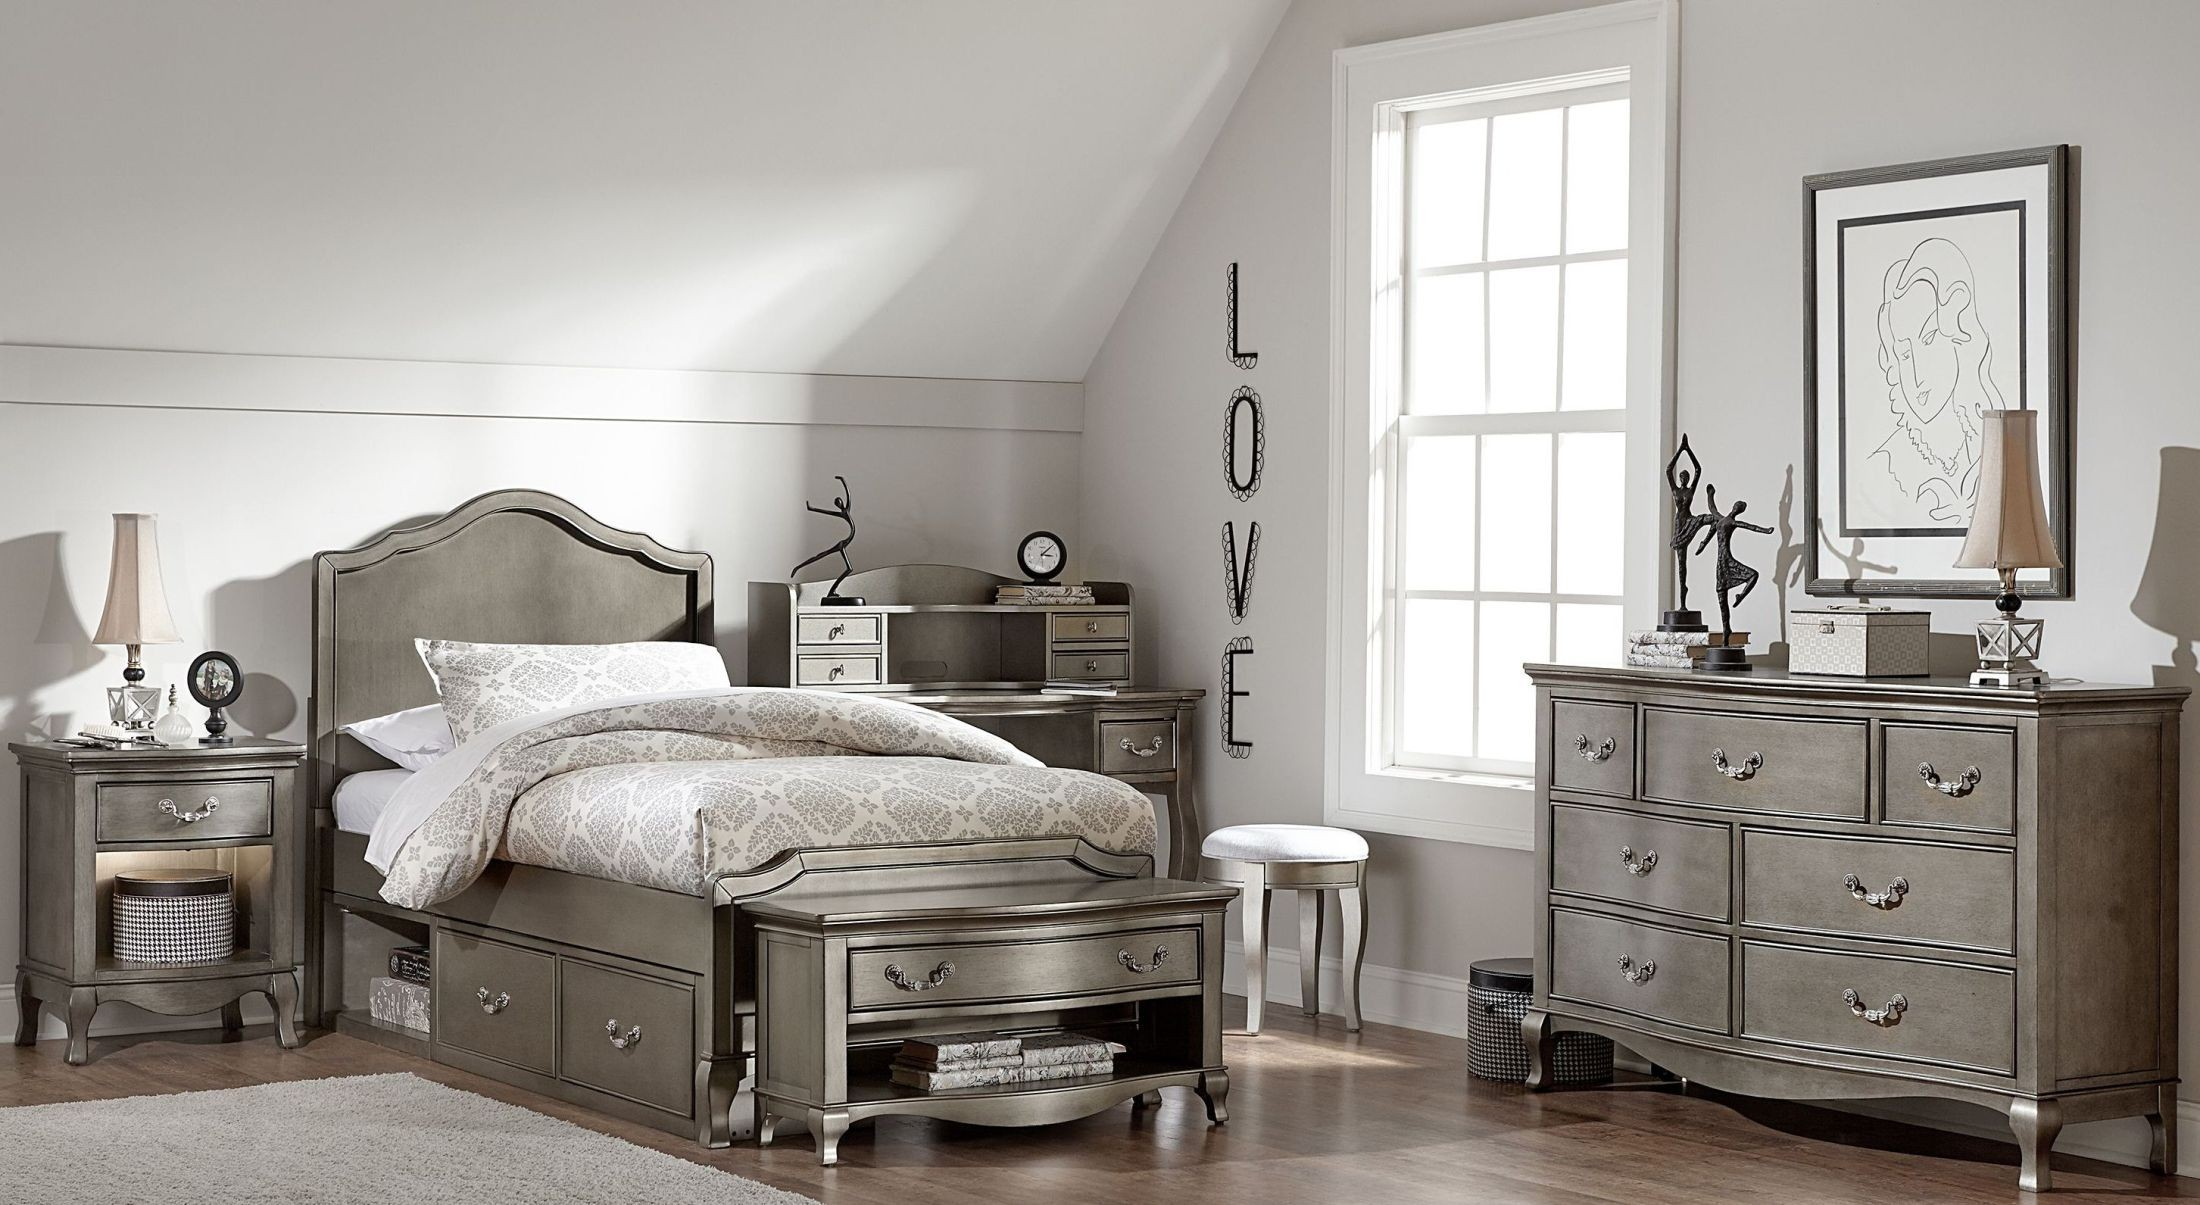 Kensington Antique Silver Charlotte Youth Panel Bedroom Set With Storage  From NE Kids | Coleman Furniture